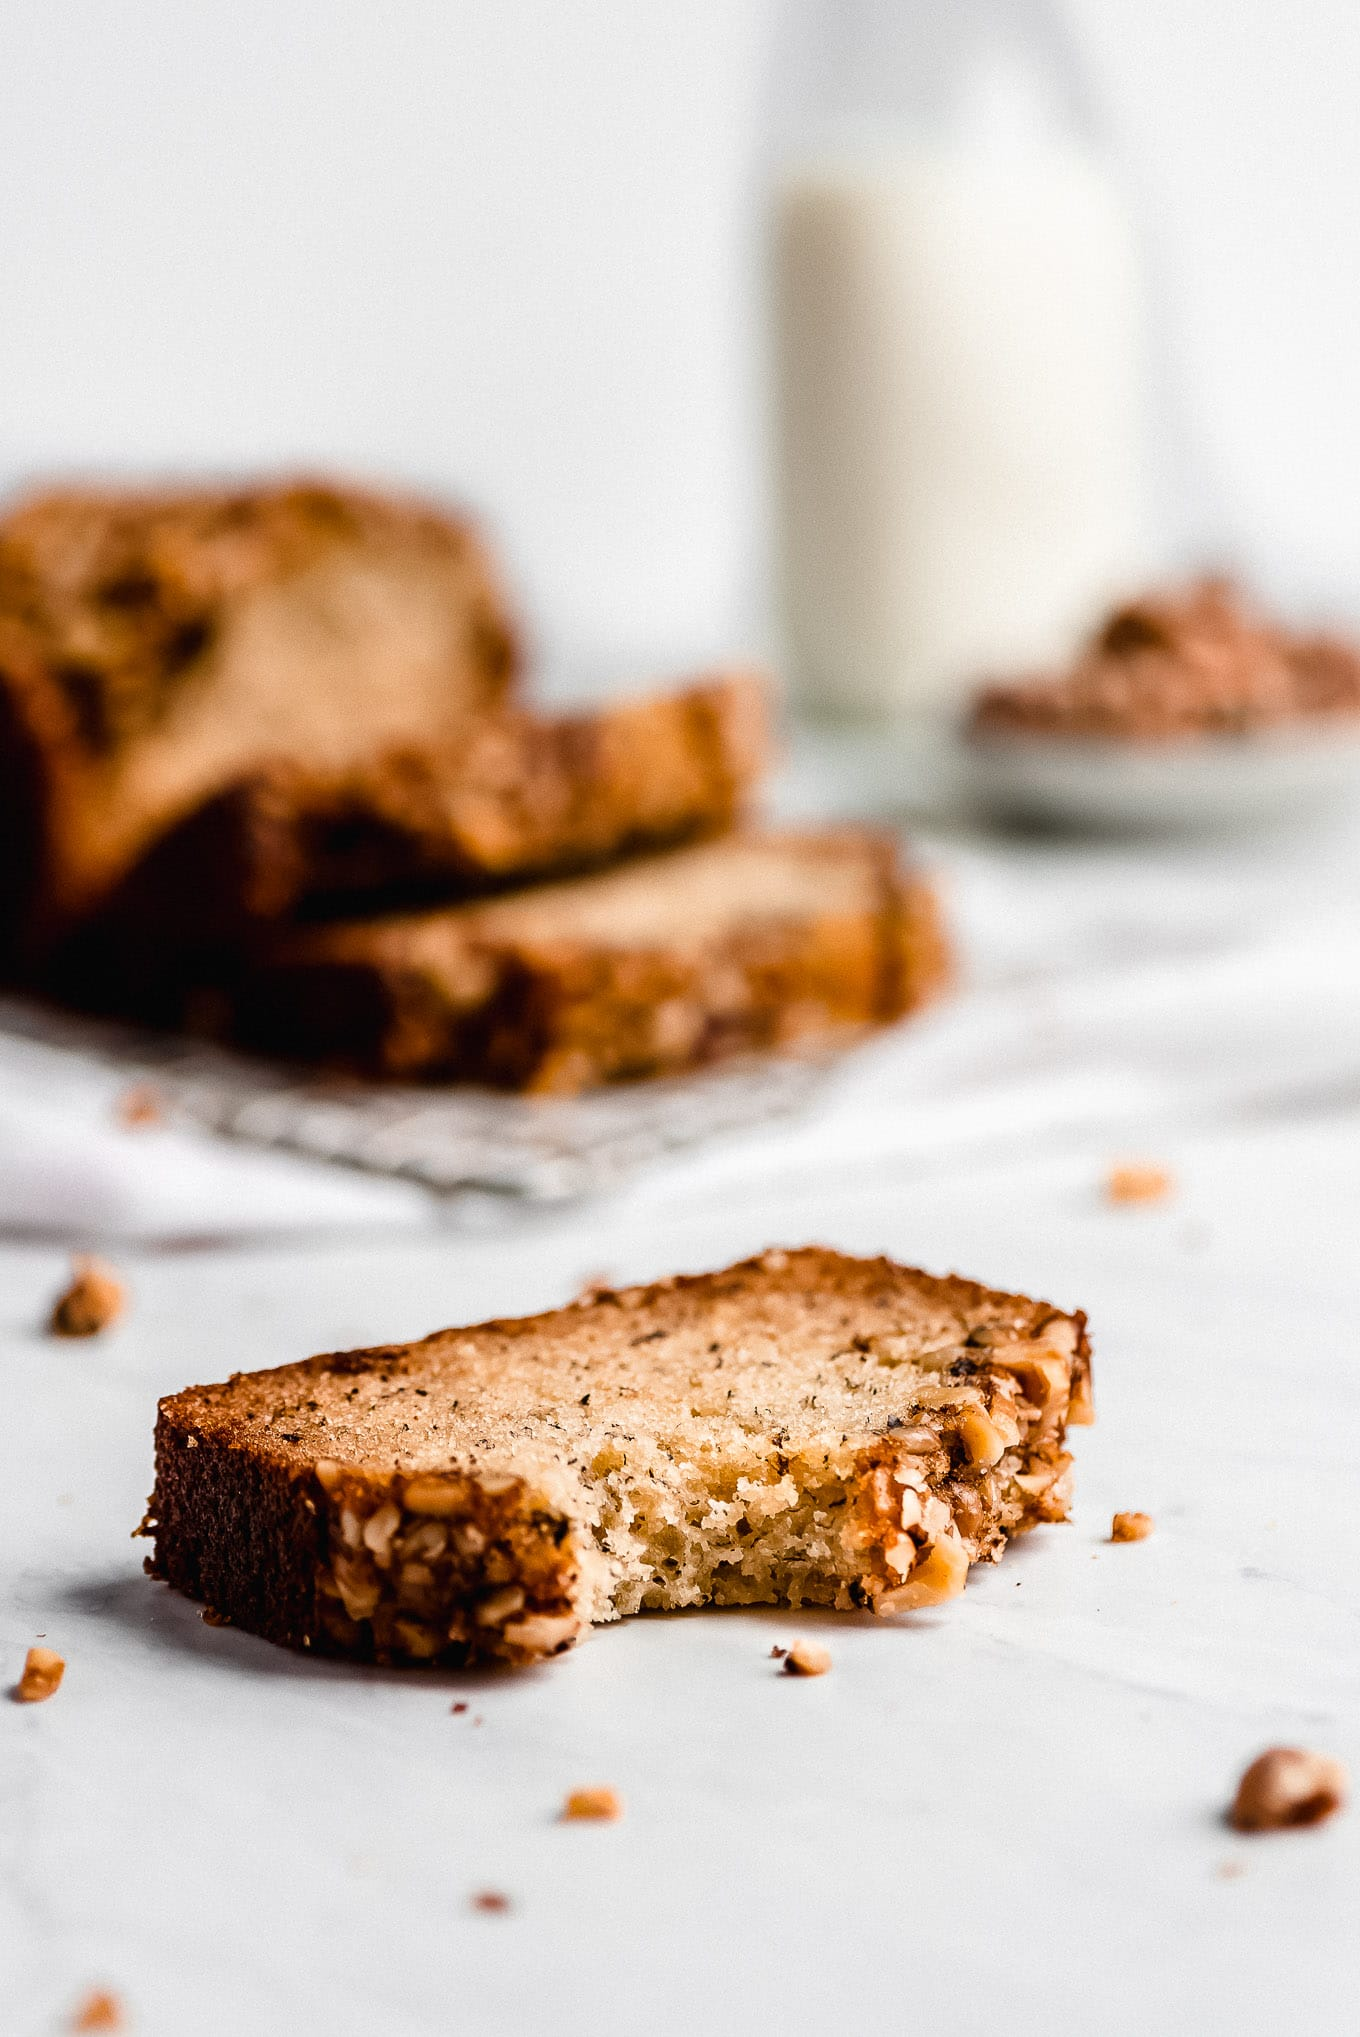 A slice of Banana Nut Bread on the table with a bite taken out showing the fluffy, tender, moist texture.